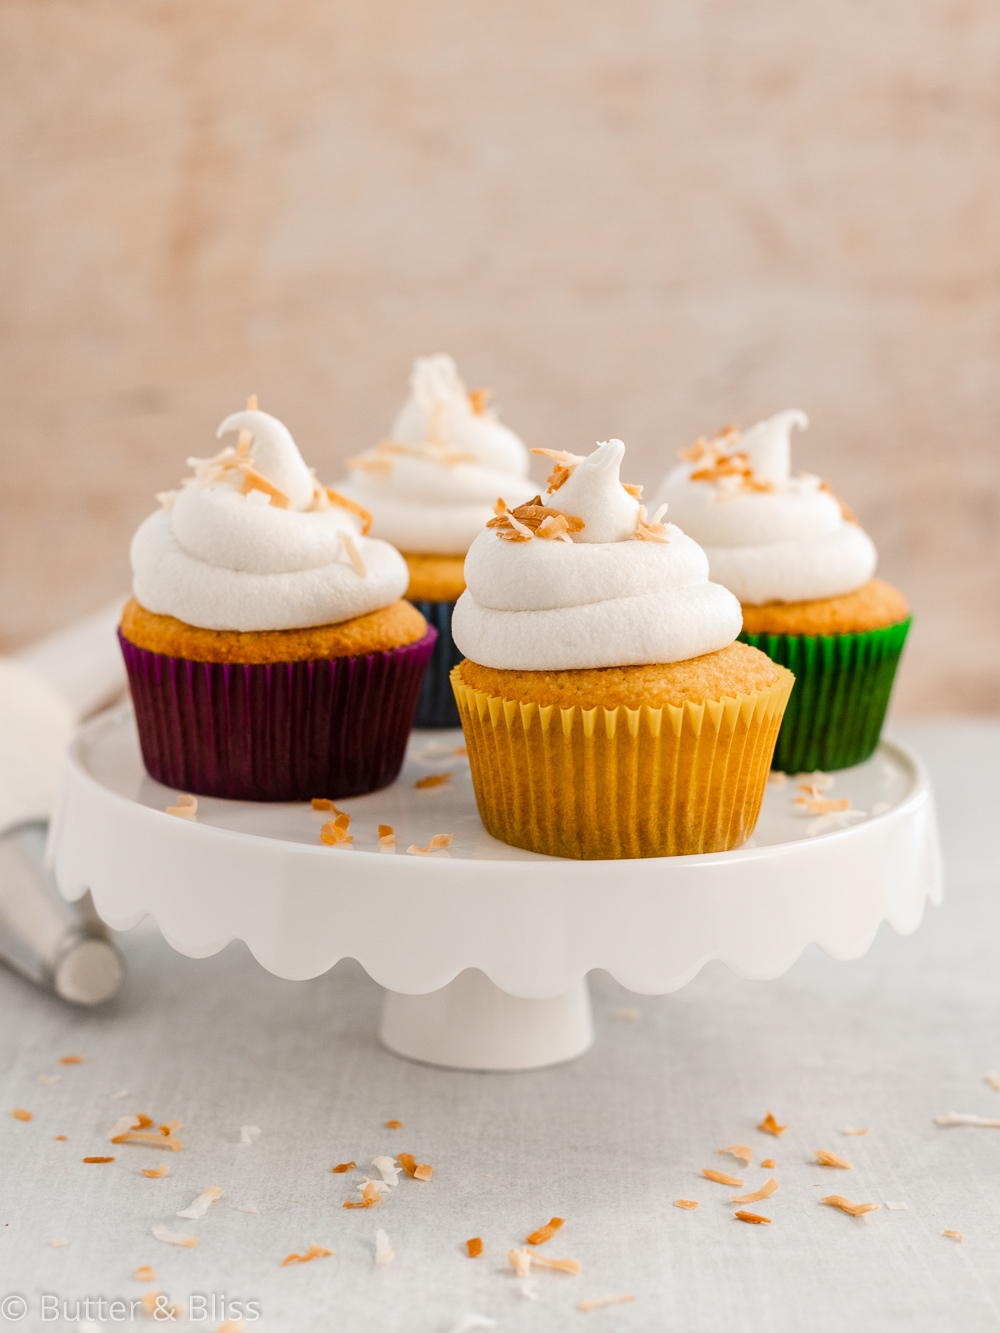 Frosted vanilla and coconut cupcakes on a platter